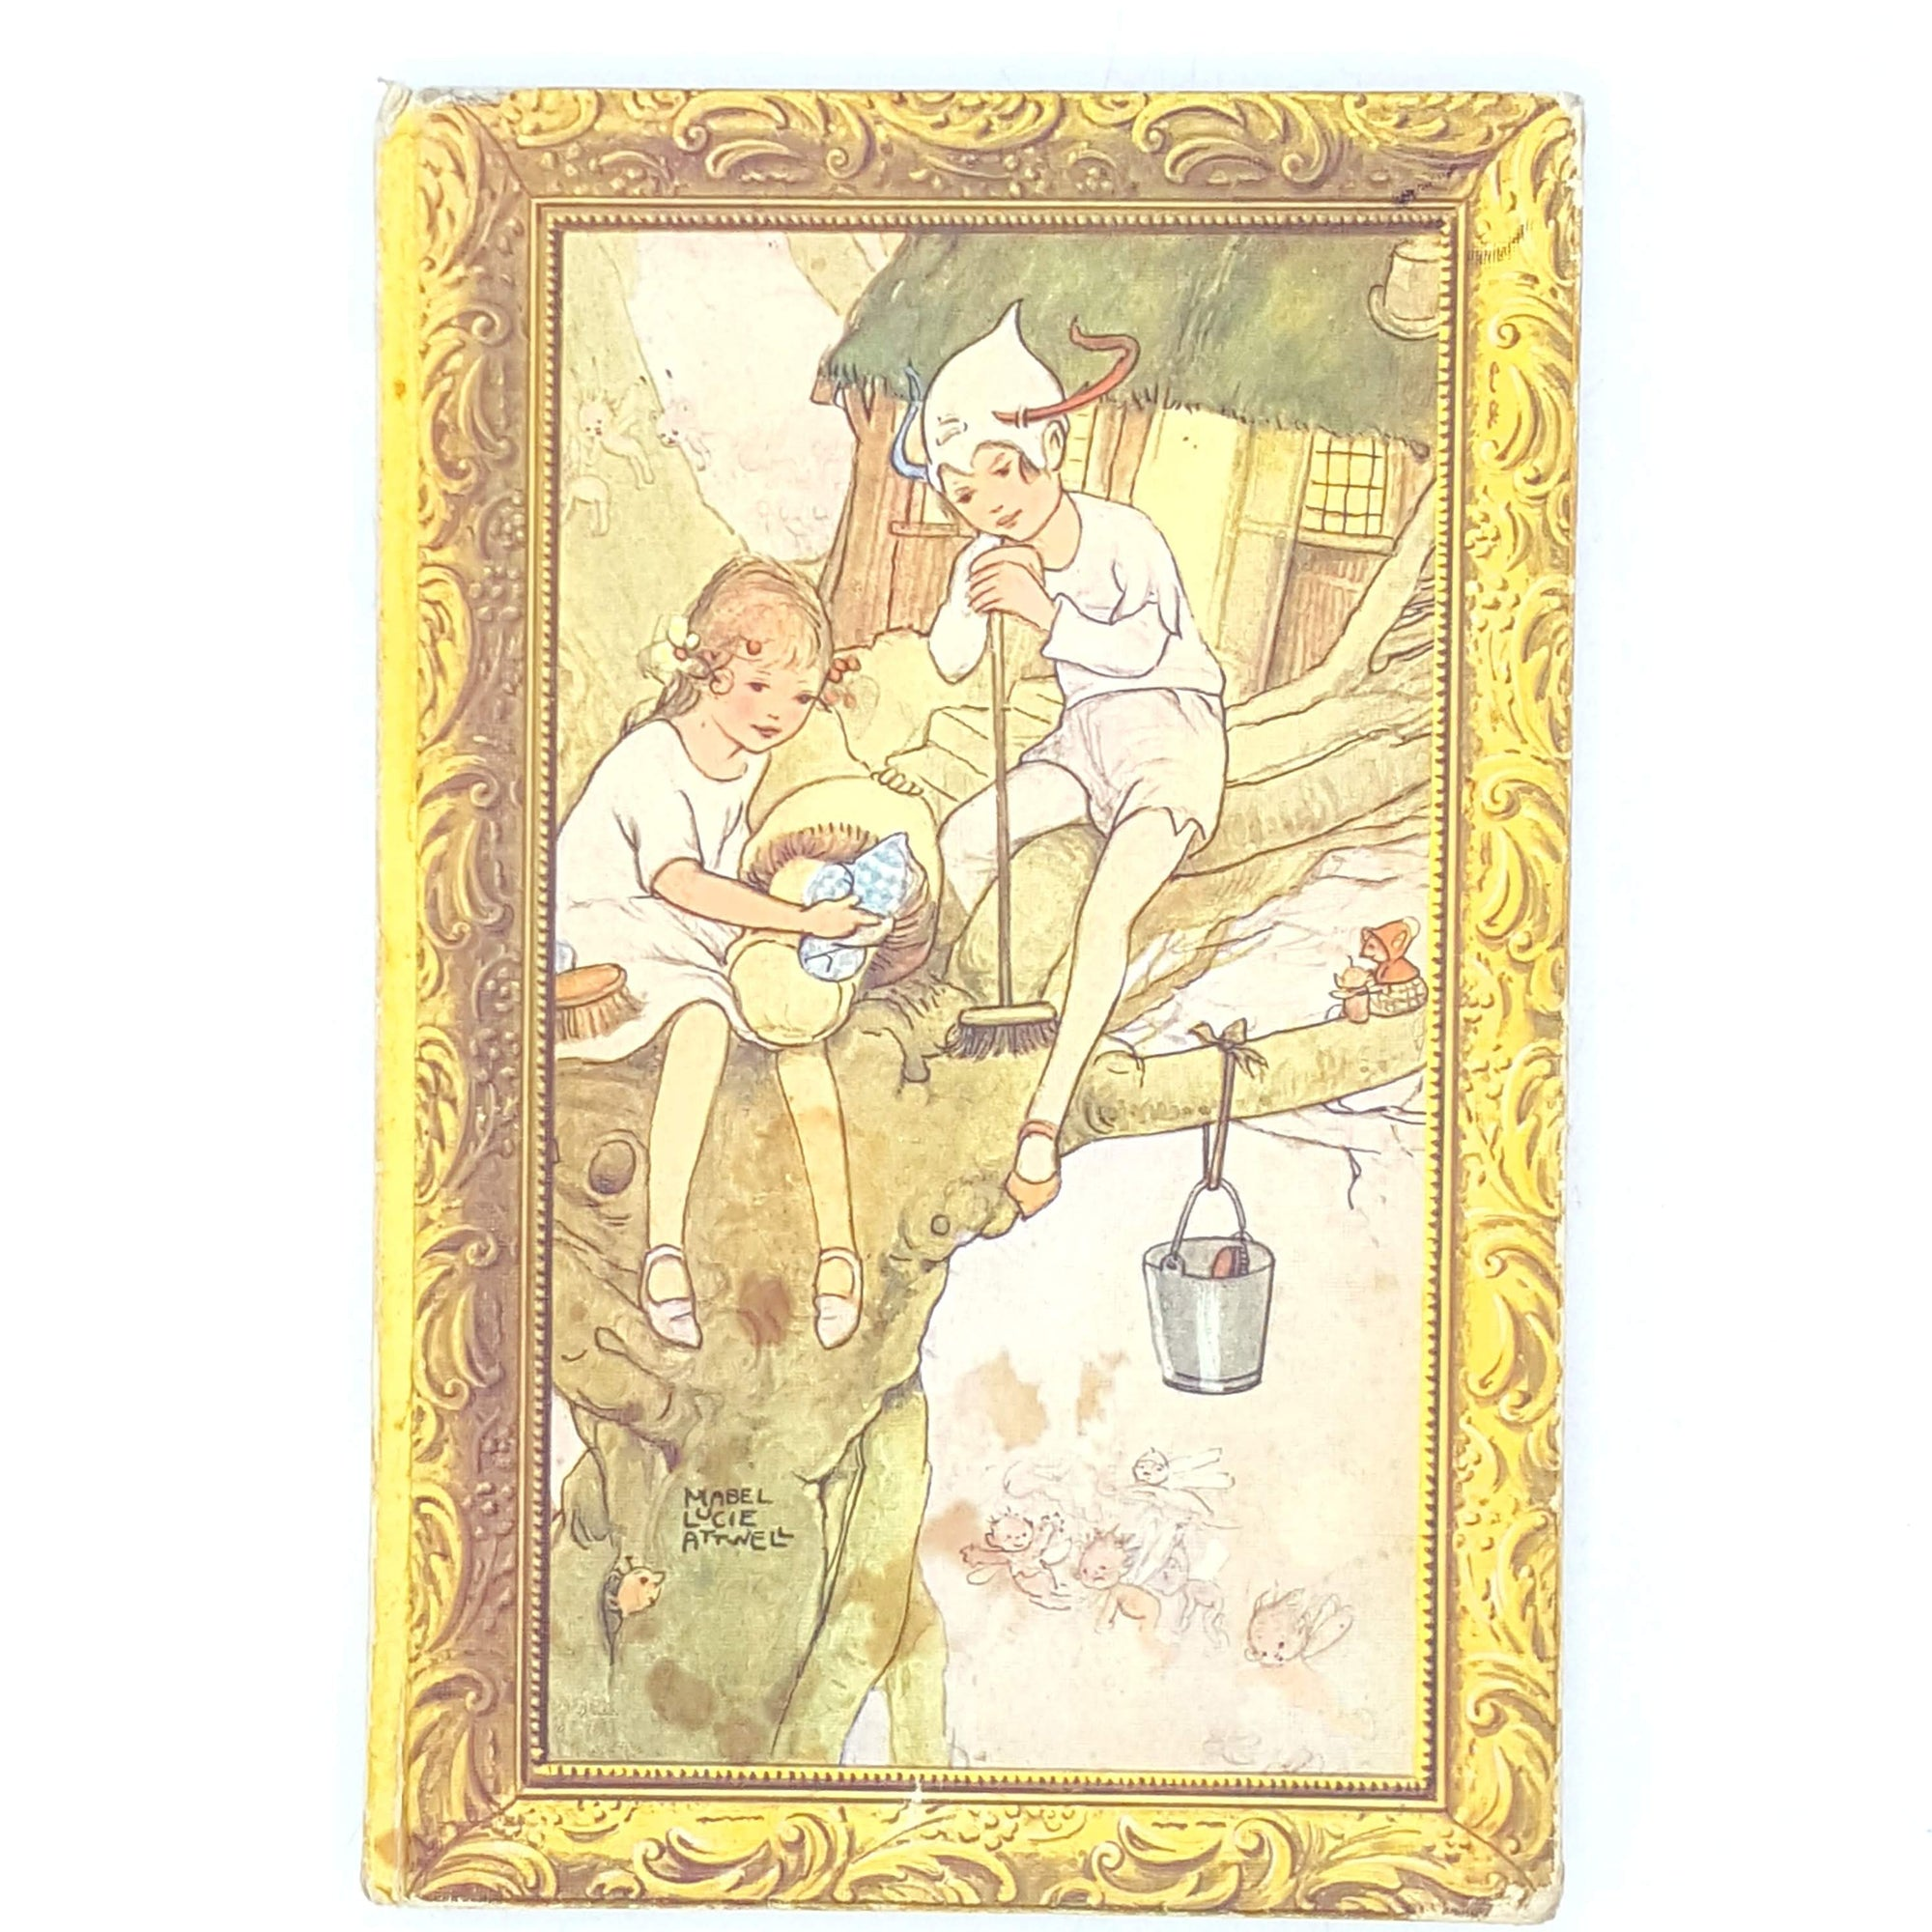 country-house-library-wendy-classics-thrift-jmbarrie-peter-pan-vintage-childrens-illustrated-books-brockhampton-old-beige-